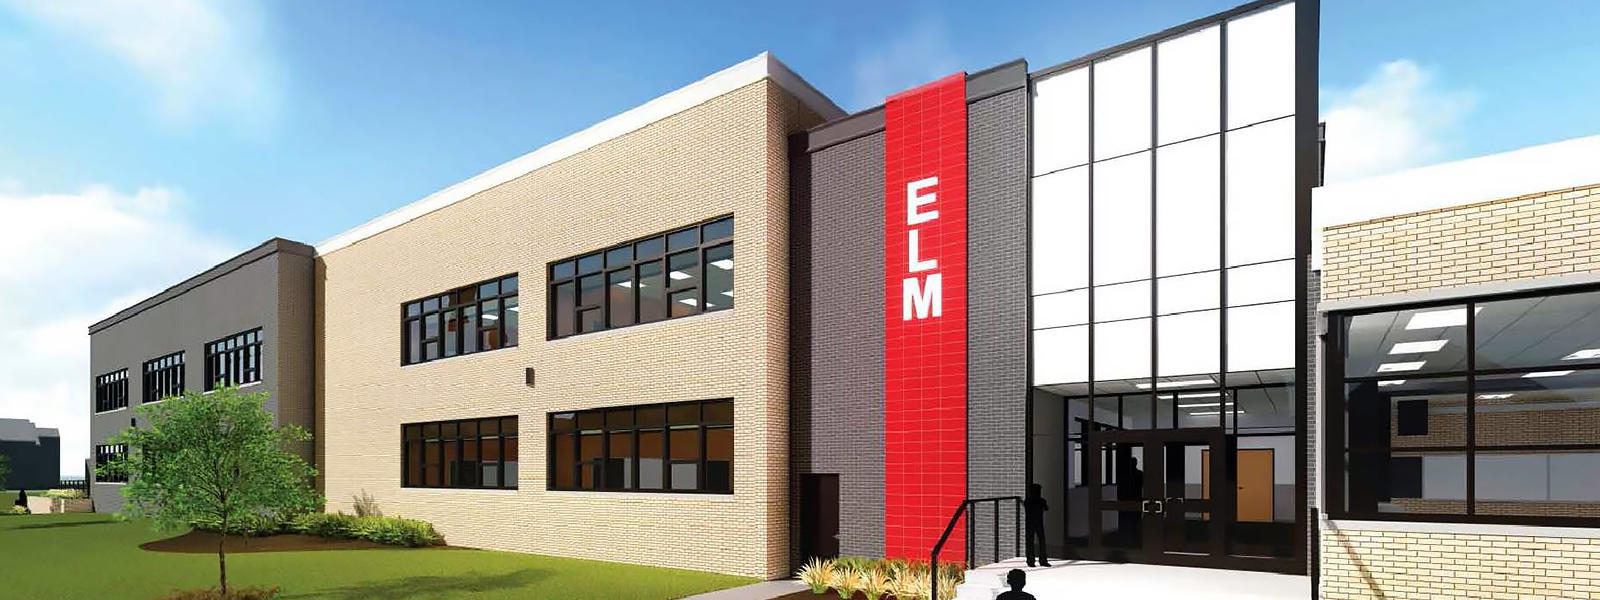 Architectural rendering of Elm's east entrance.